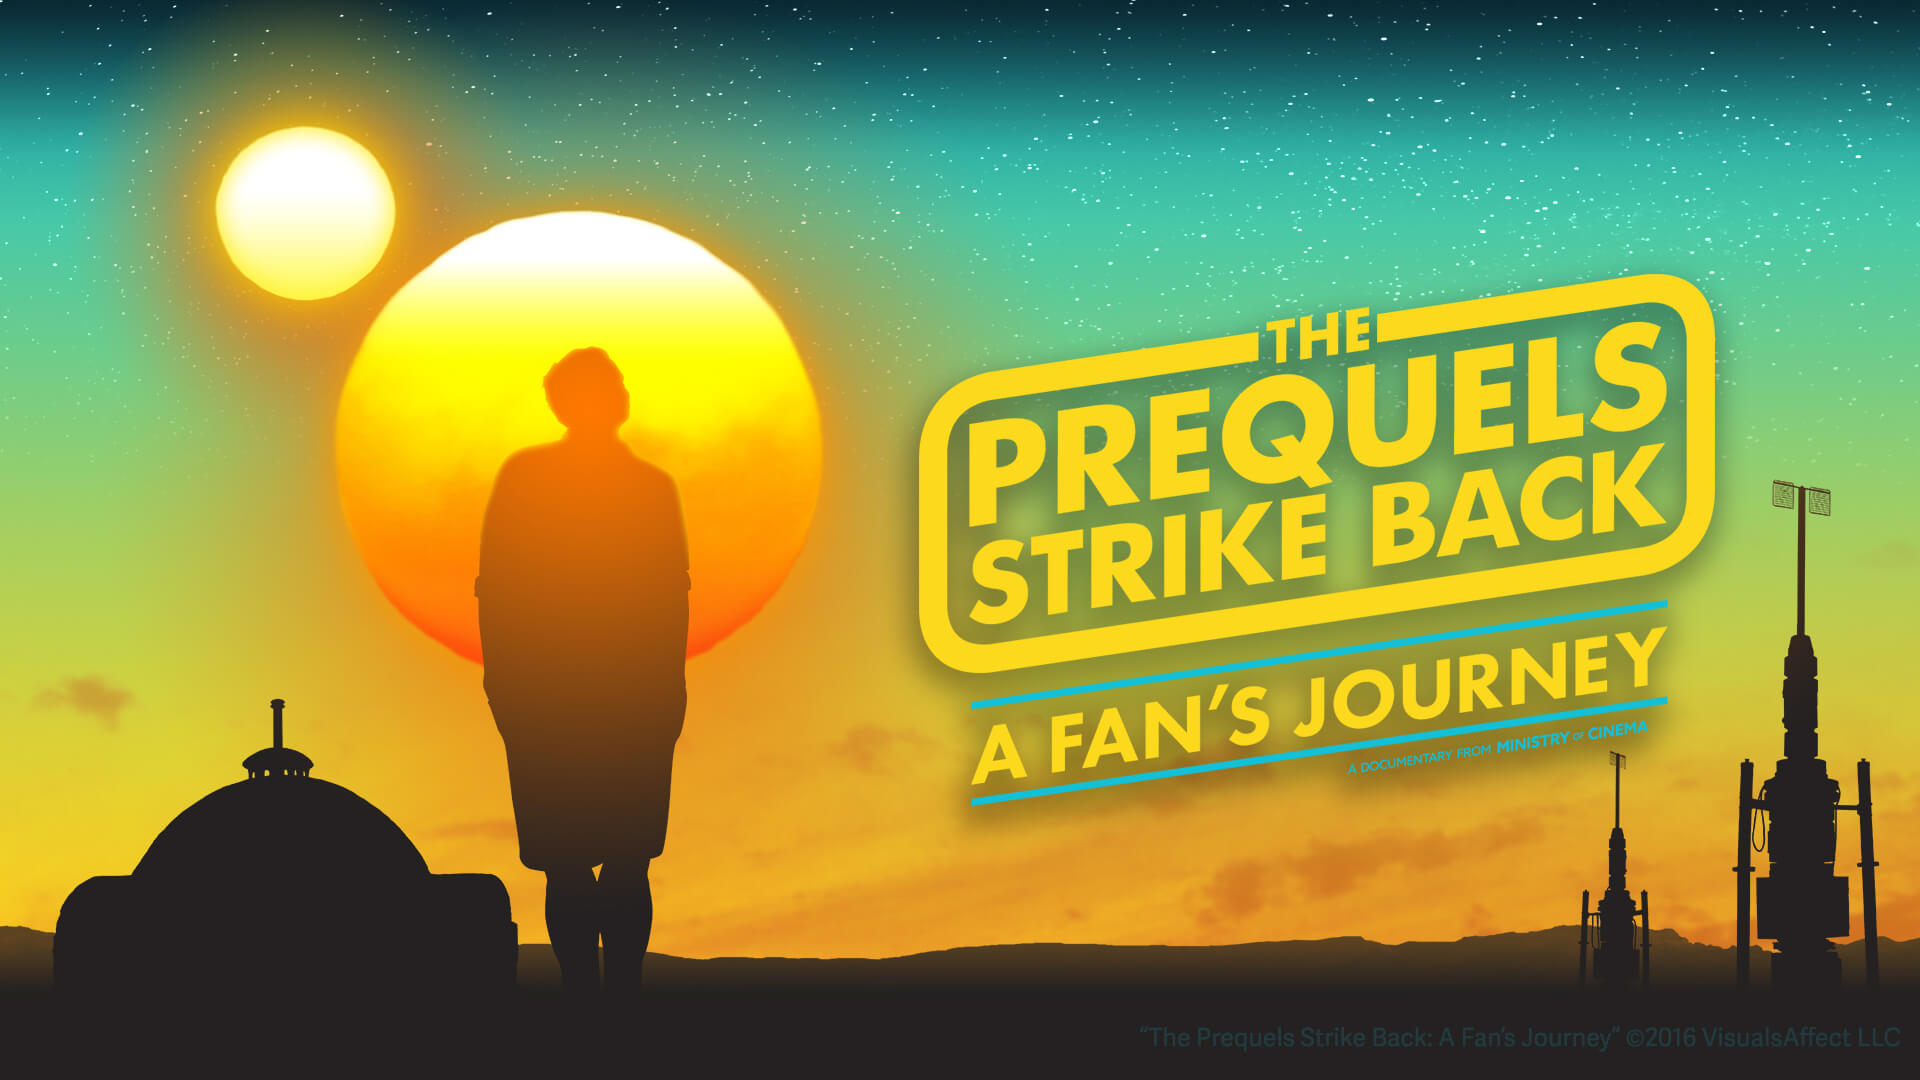 The Prequels Strikes Back: A Fan's Journey banner.